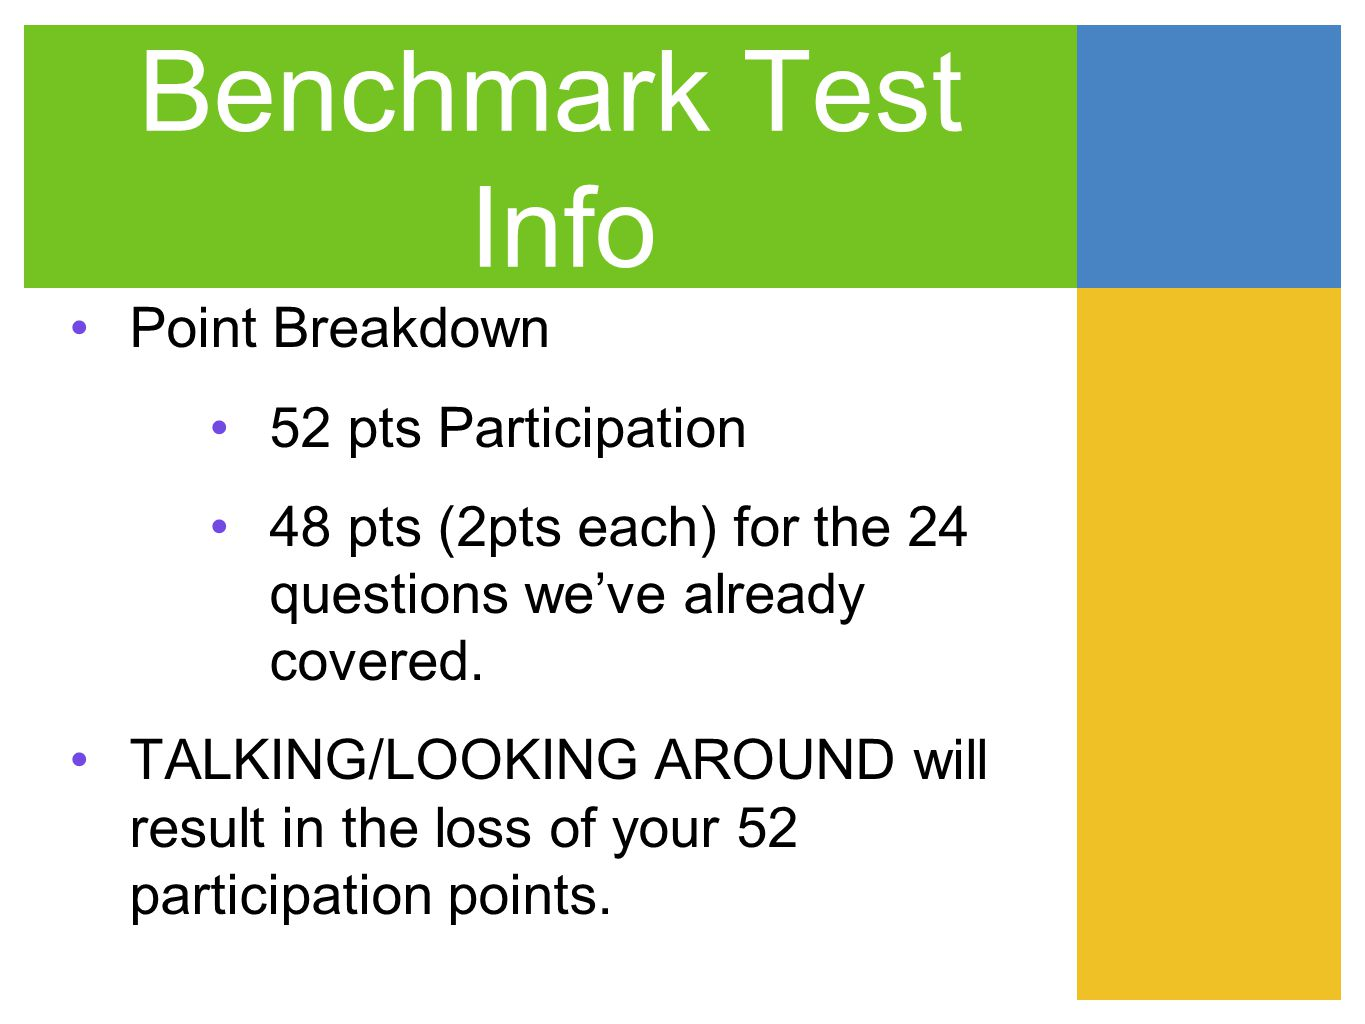 Benchmark Test Info Point Breakdown 52 pts Participation 48 pts (2pts each) for the 24 questions weve already covered. TALKING/LOOKING AROUND will res